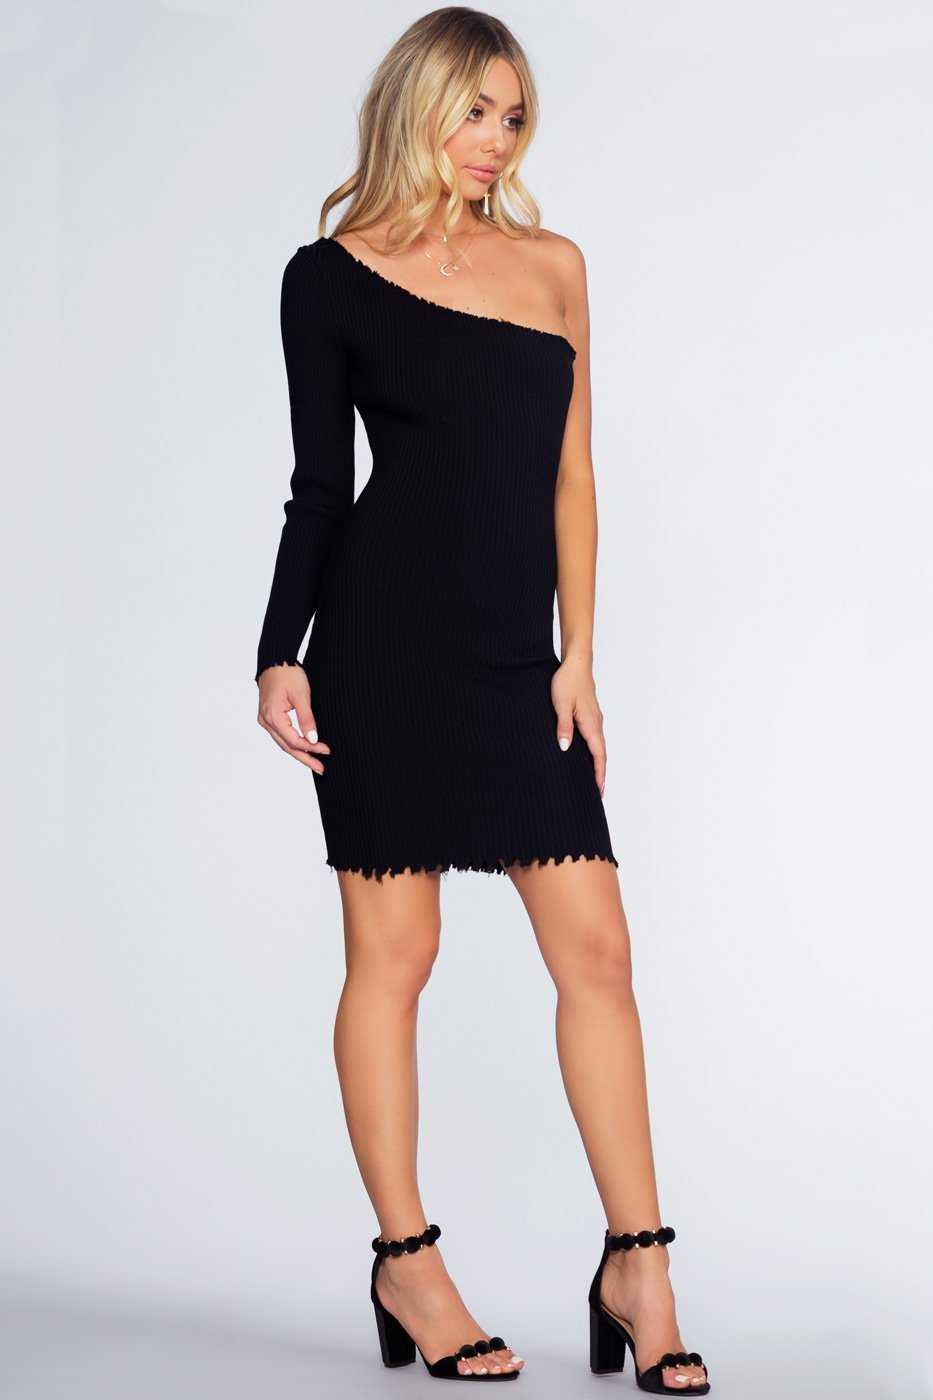 Dresses - Rib Me Right Dress - Black